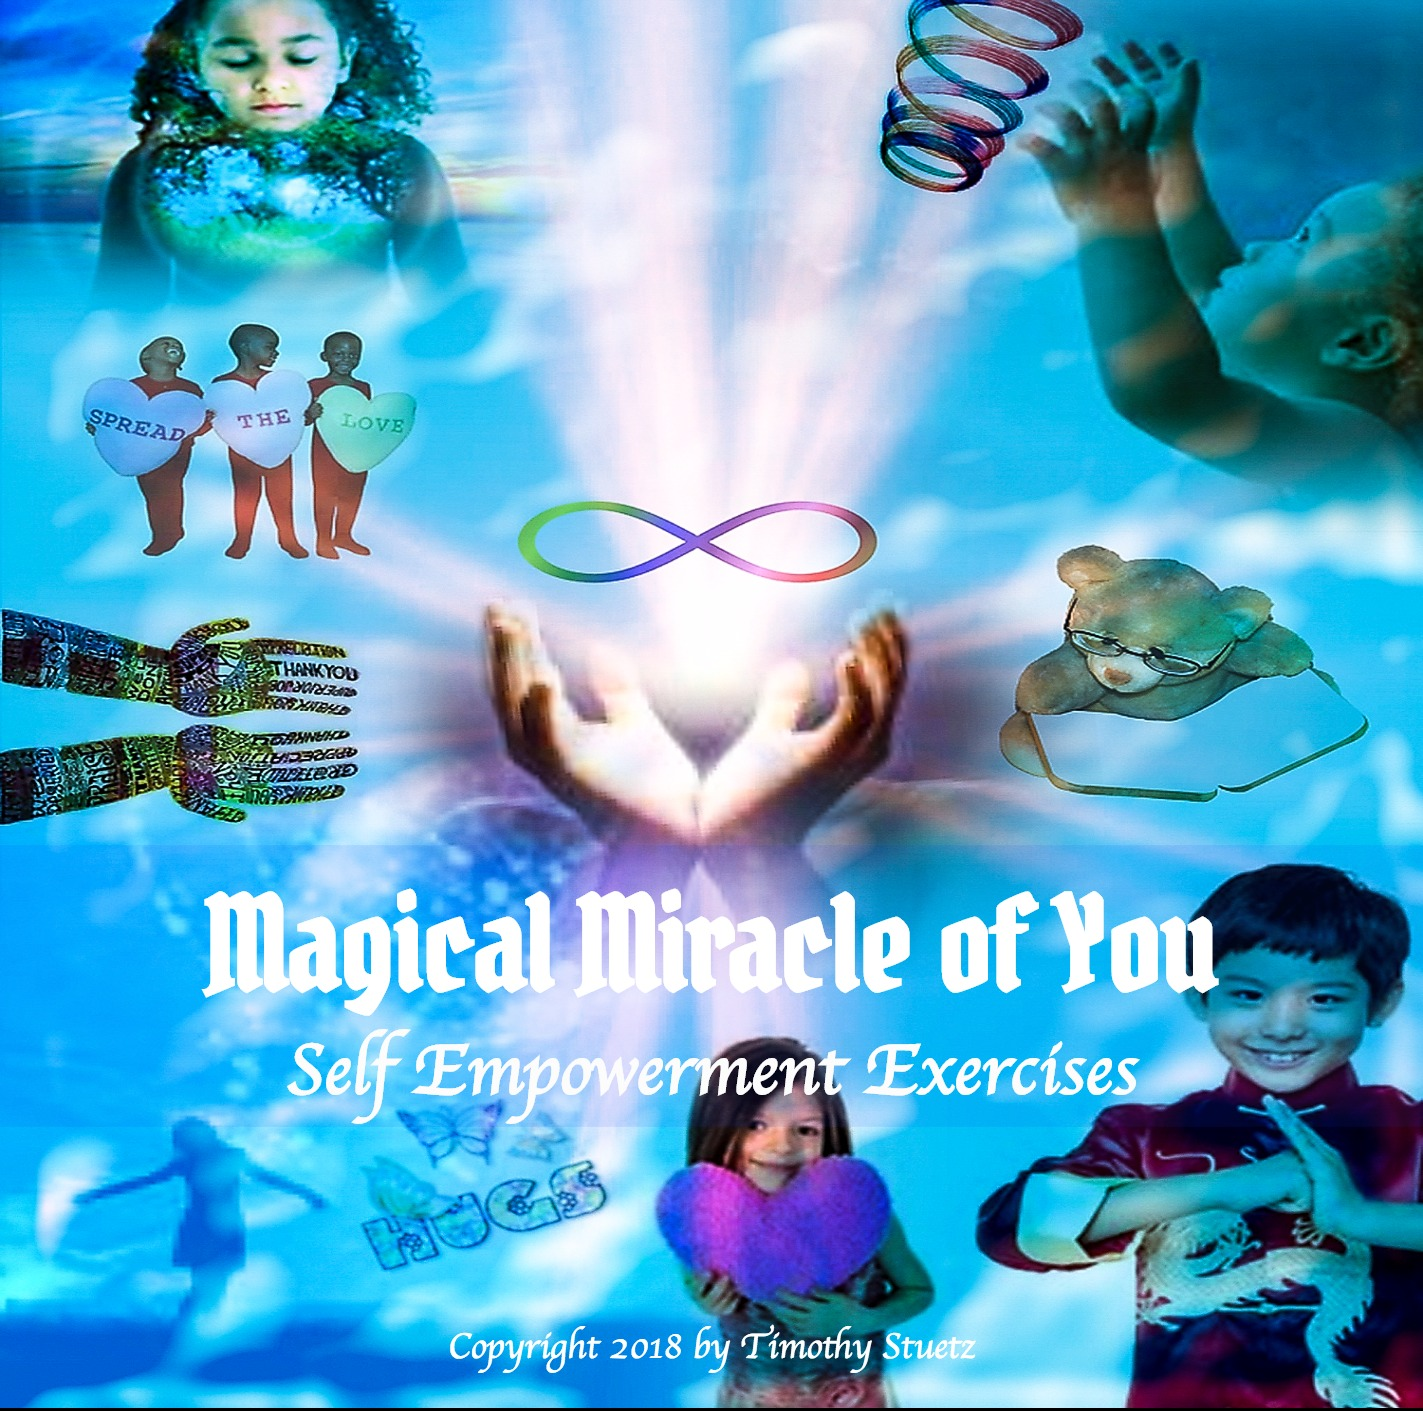 Magical Miracle of You Self Empowerment Exercises CD